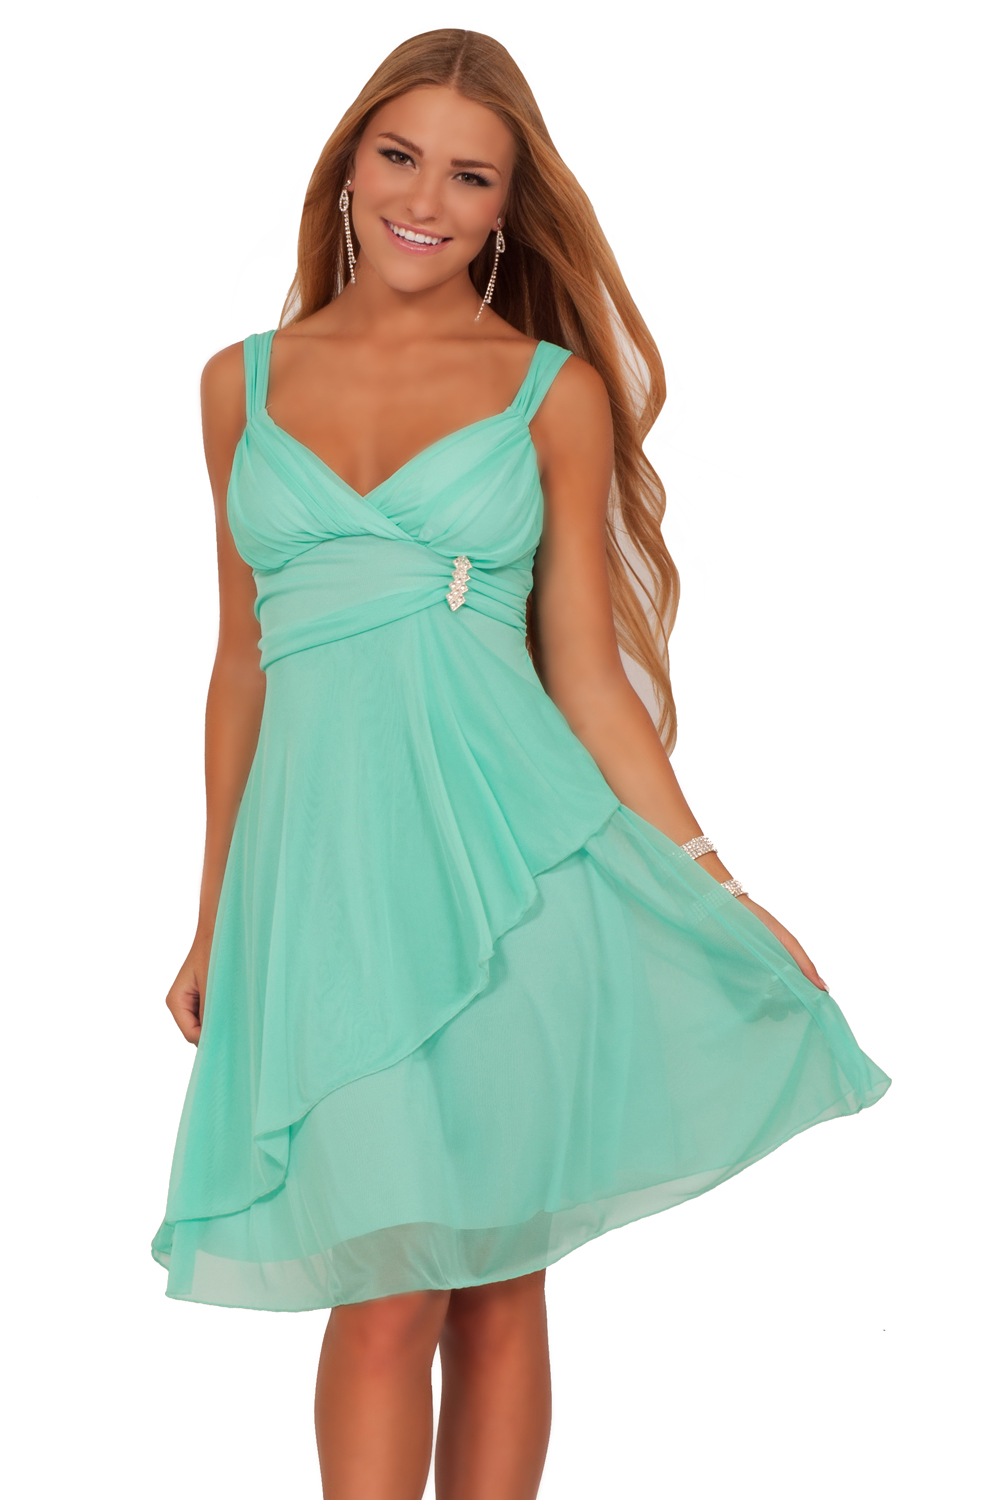 Kohl's Juniors department offers everything from summer dresses and sweater dresses to party and prom dresses. Find halter dresses for teens, fancier homecoming dresses and winter formal dresses for the big dance, fit and flare styles and much more.